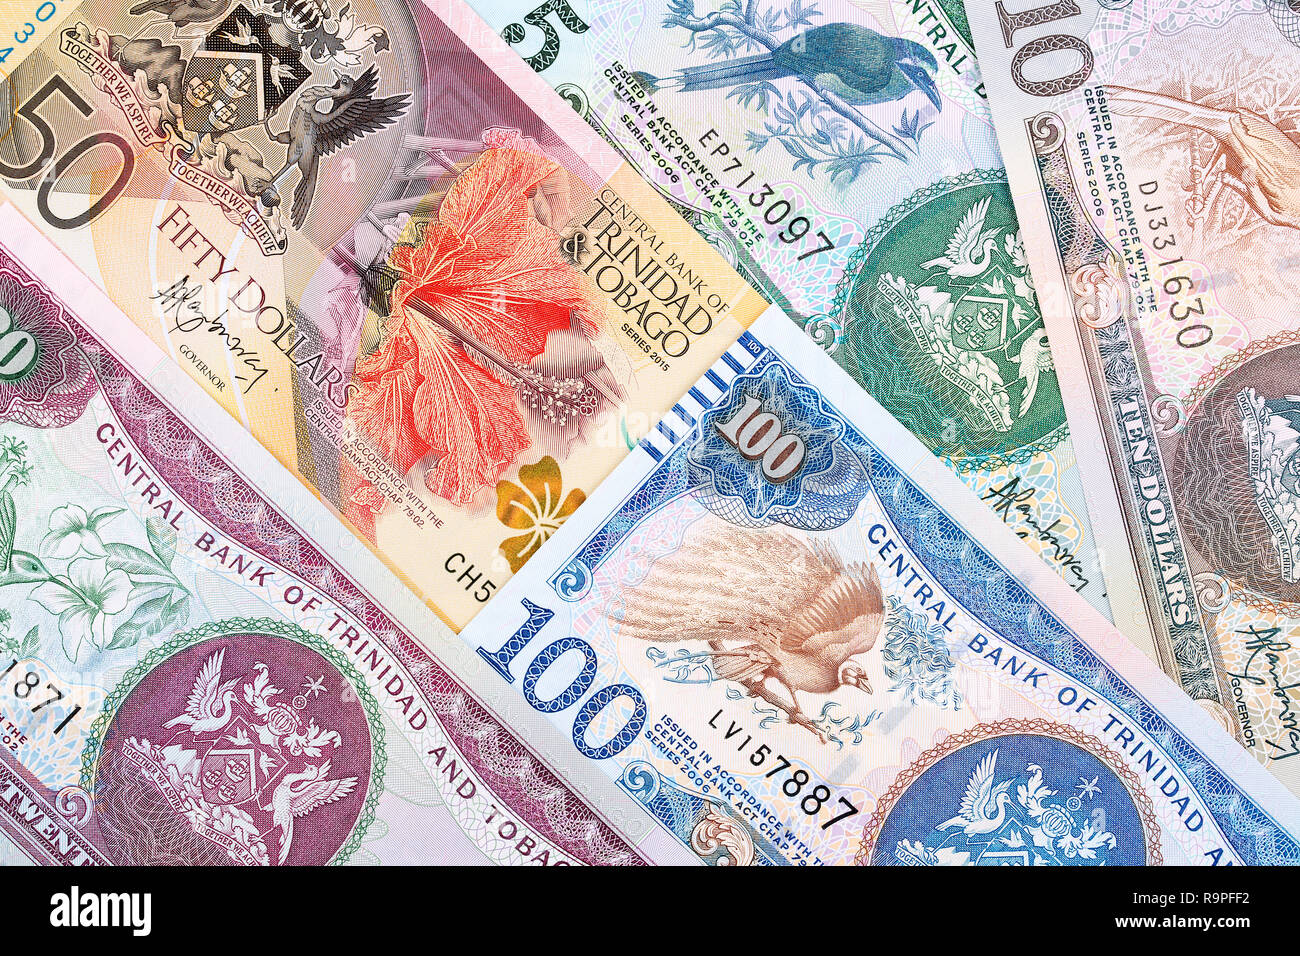 Trinidad Currency Stock Photos Amp Trinidad Currency Stock